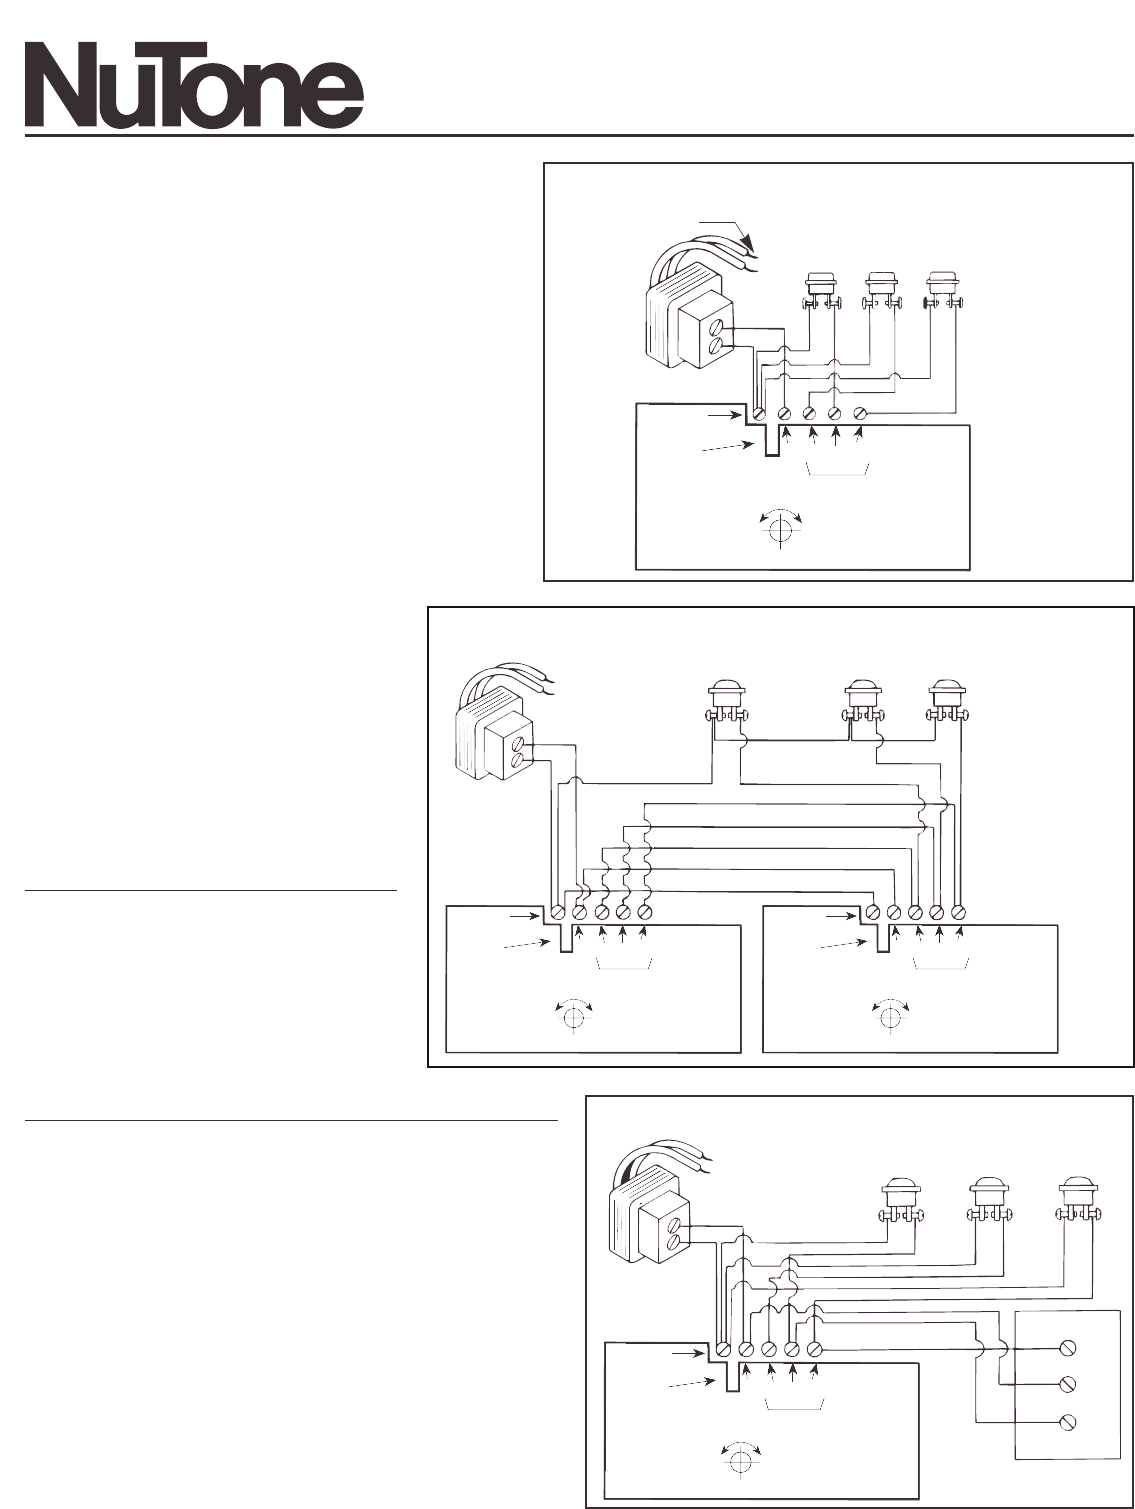 ace9333b 957d 46fc b4ce 11b5f4c43a17 bg1 door chime wiring diagram nutone door bell wiring diagrams \u2022 free Doorbell Transformer Wiring Diagram at gsmportal.co